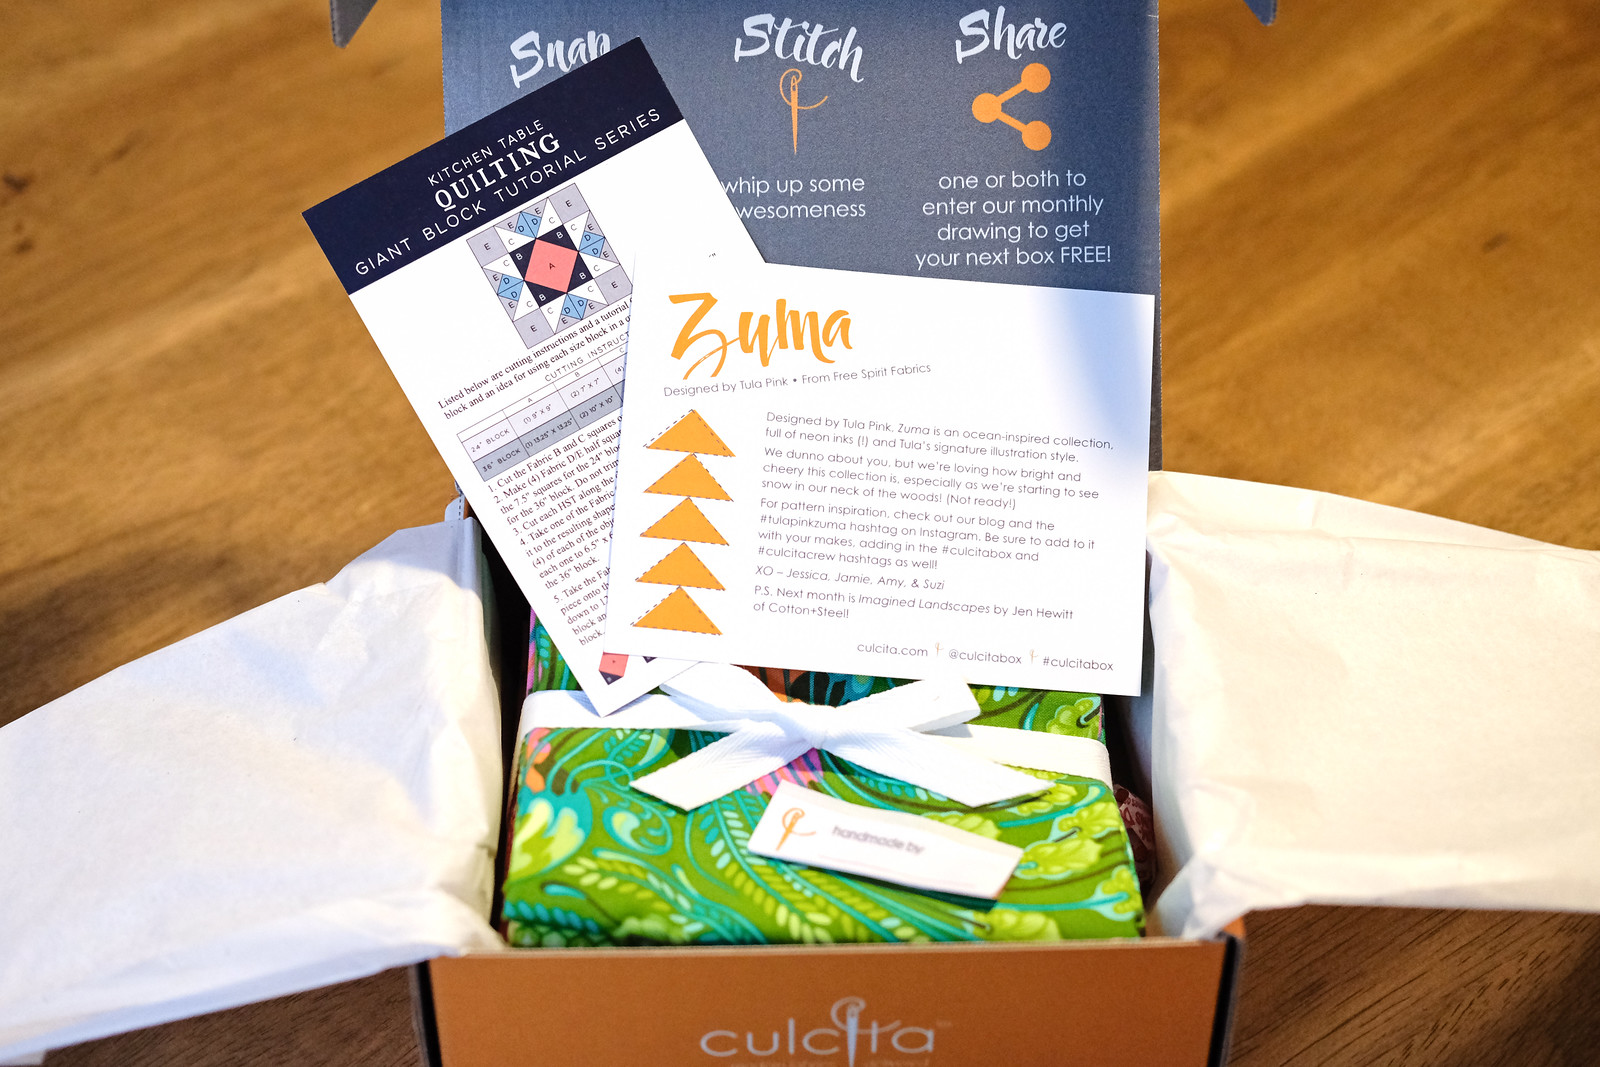 October Culcita Box Unboxing - Zuma by Tula Pink